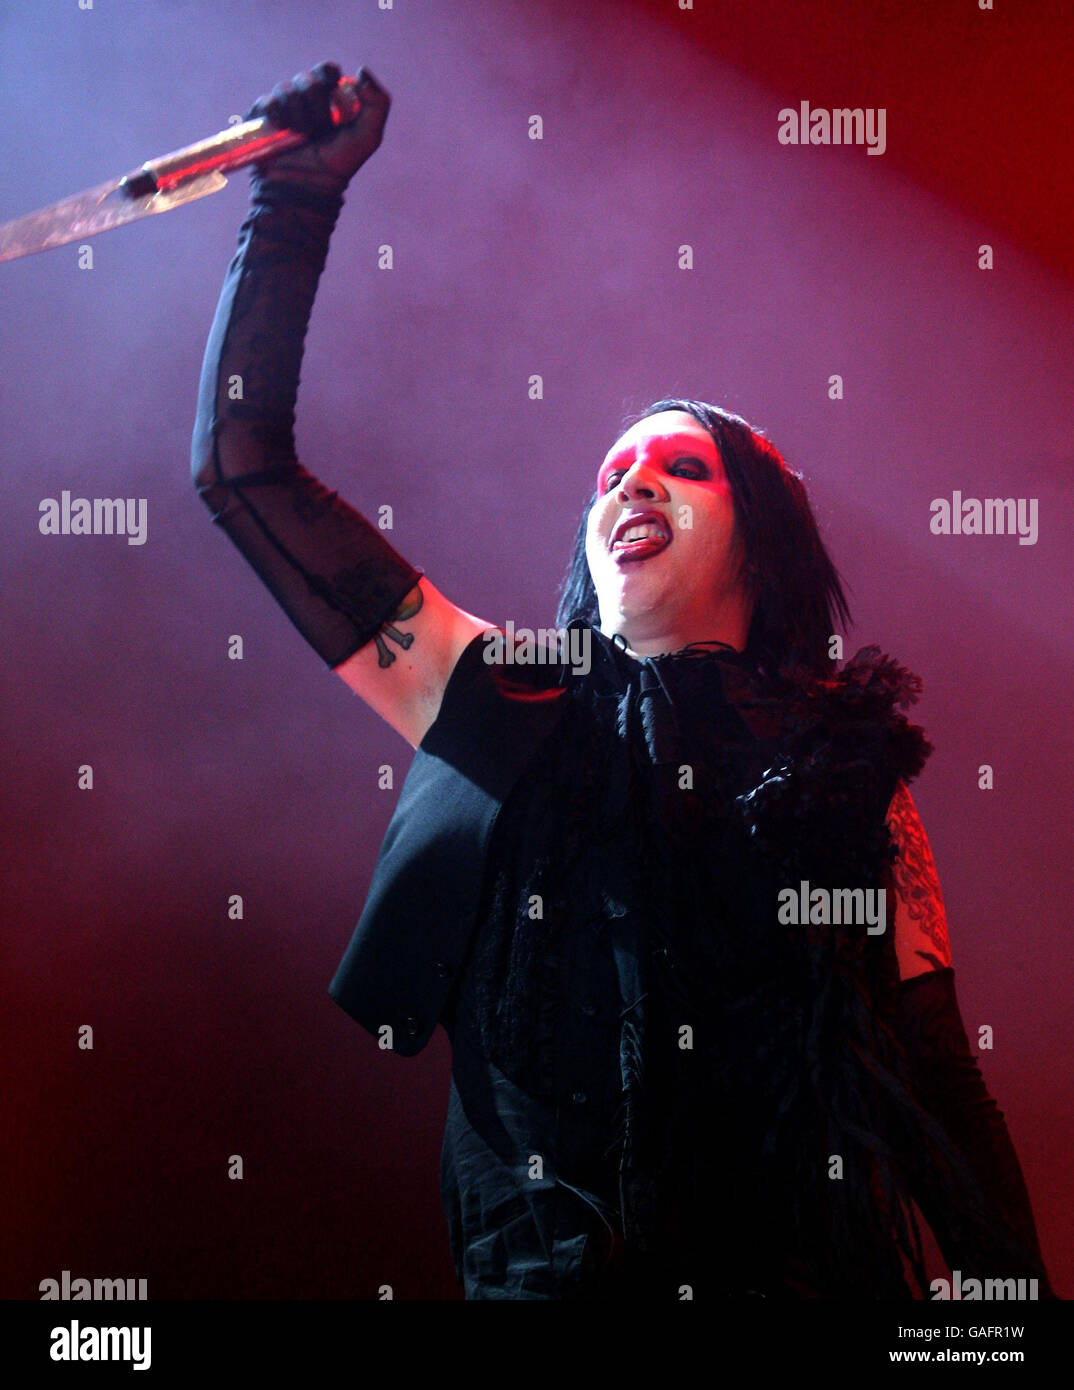 Marilyn manson performs in concert at wembley arena stock photos marilyn manson in concert london stock image kristyandbryce Choice Image